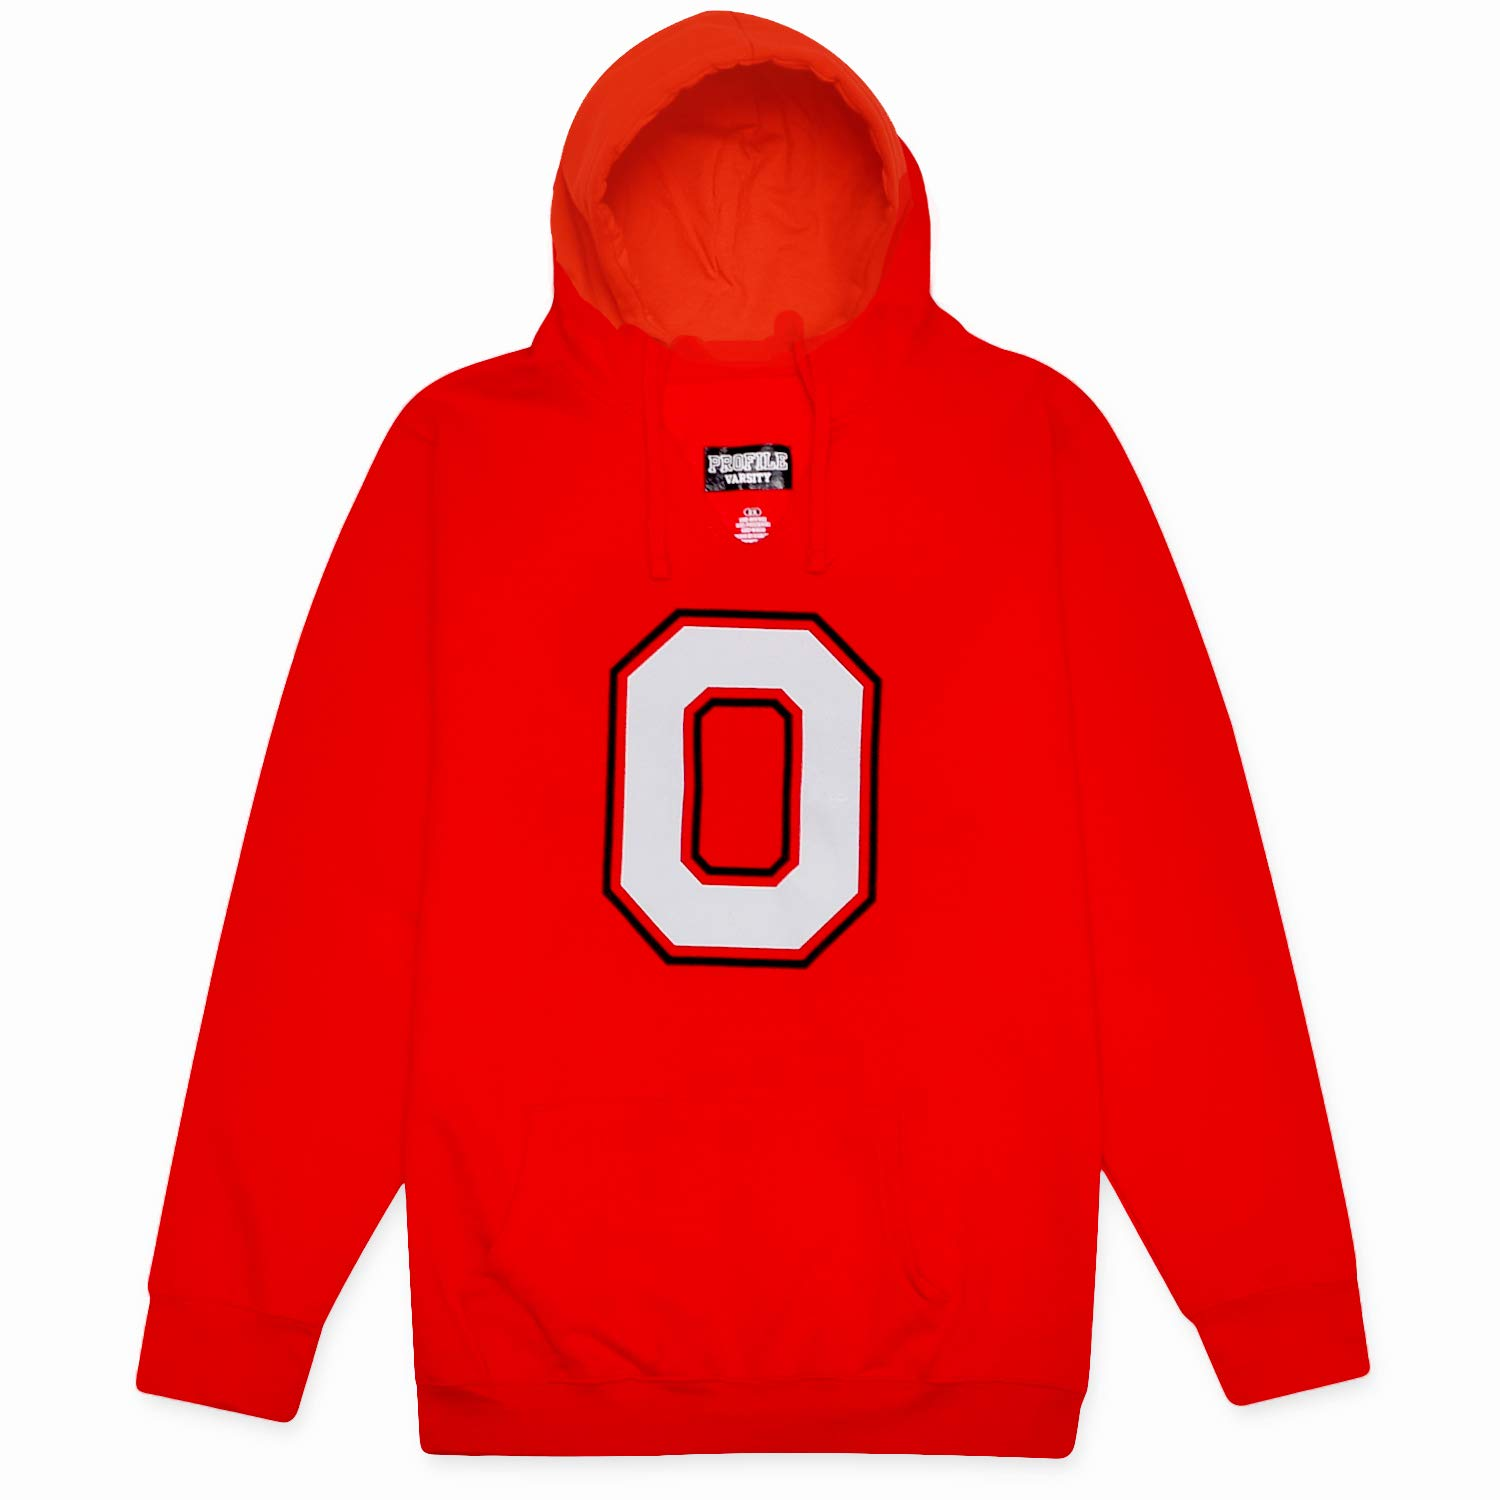 de2d9fb8414 Amazon.com  NCAA OFFICIAL GEAR Ohio State Buckeyes Womens Logo Pull Over  Hoodie  Clothing